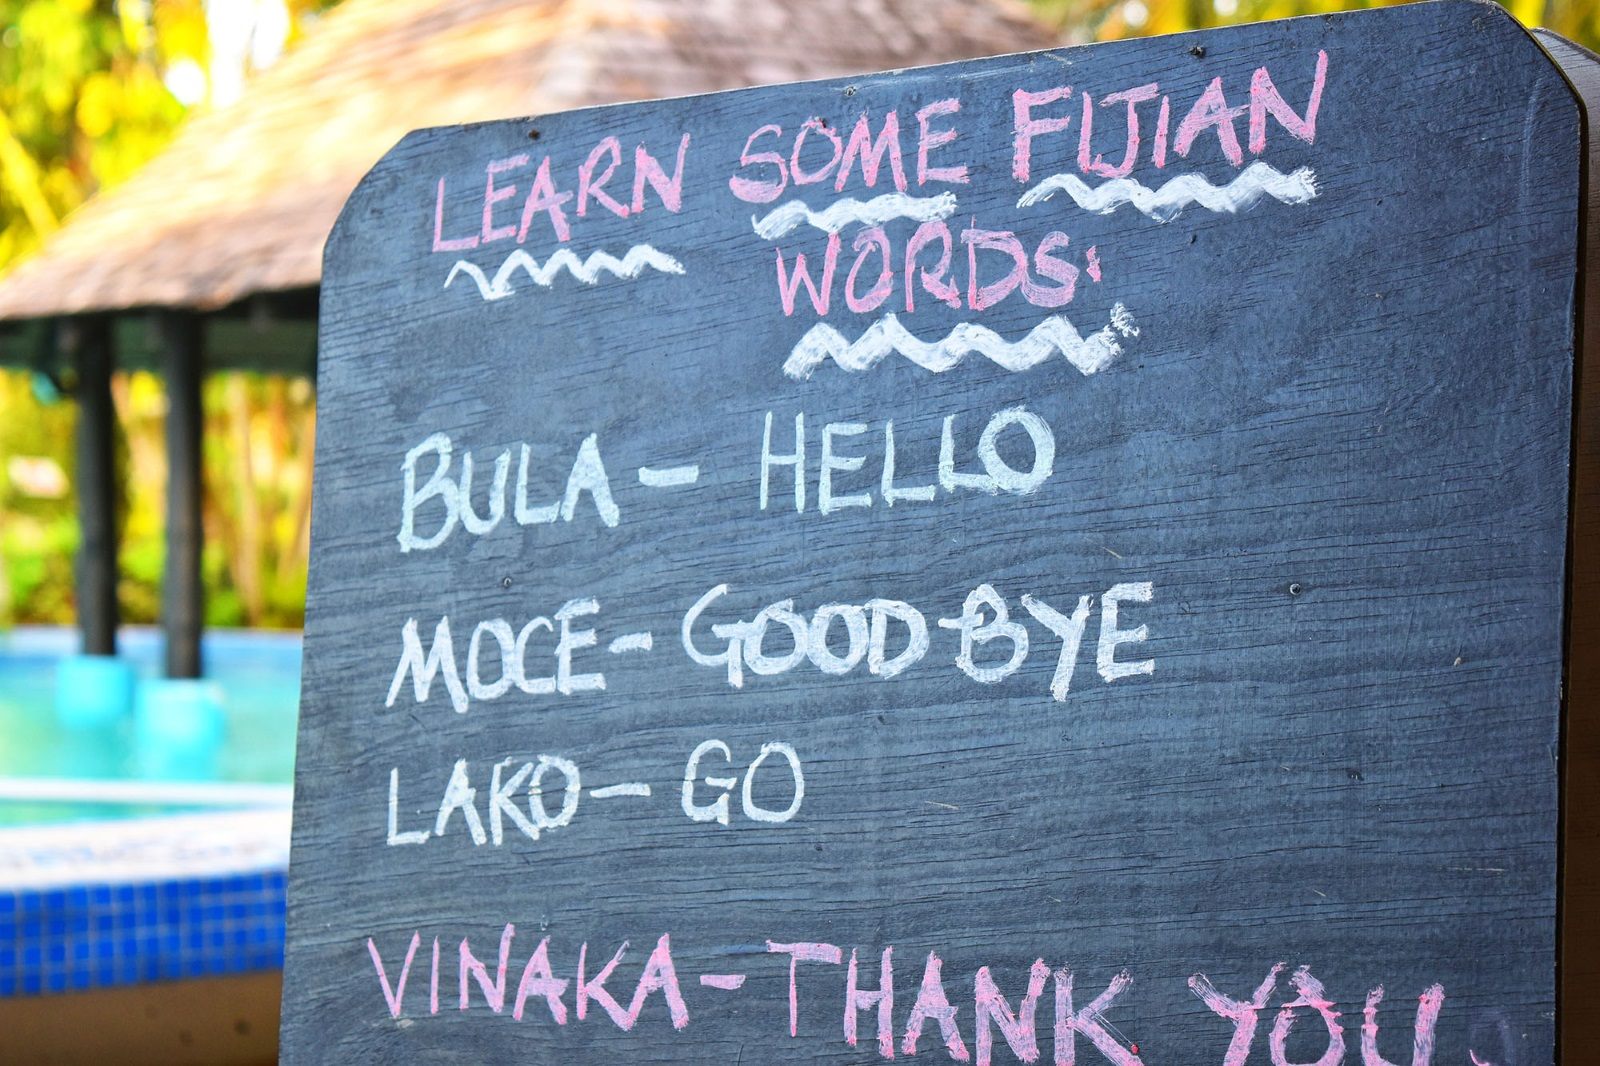 10 Fijian Words You Need to Know When Visiting Fiji